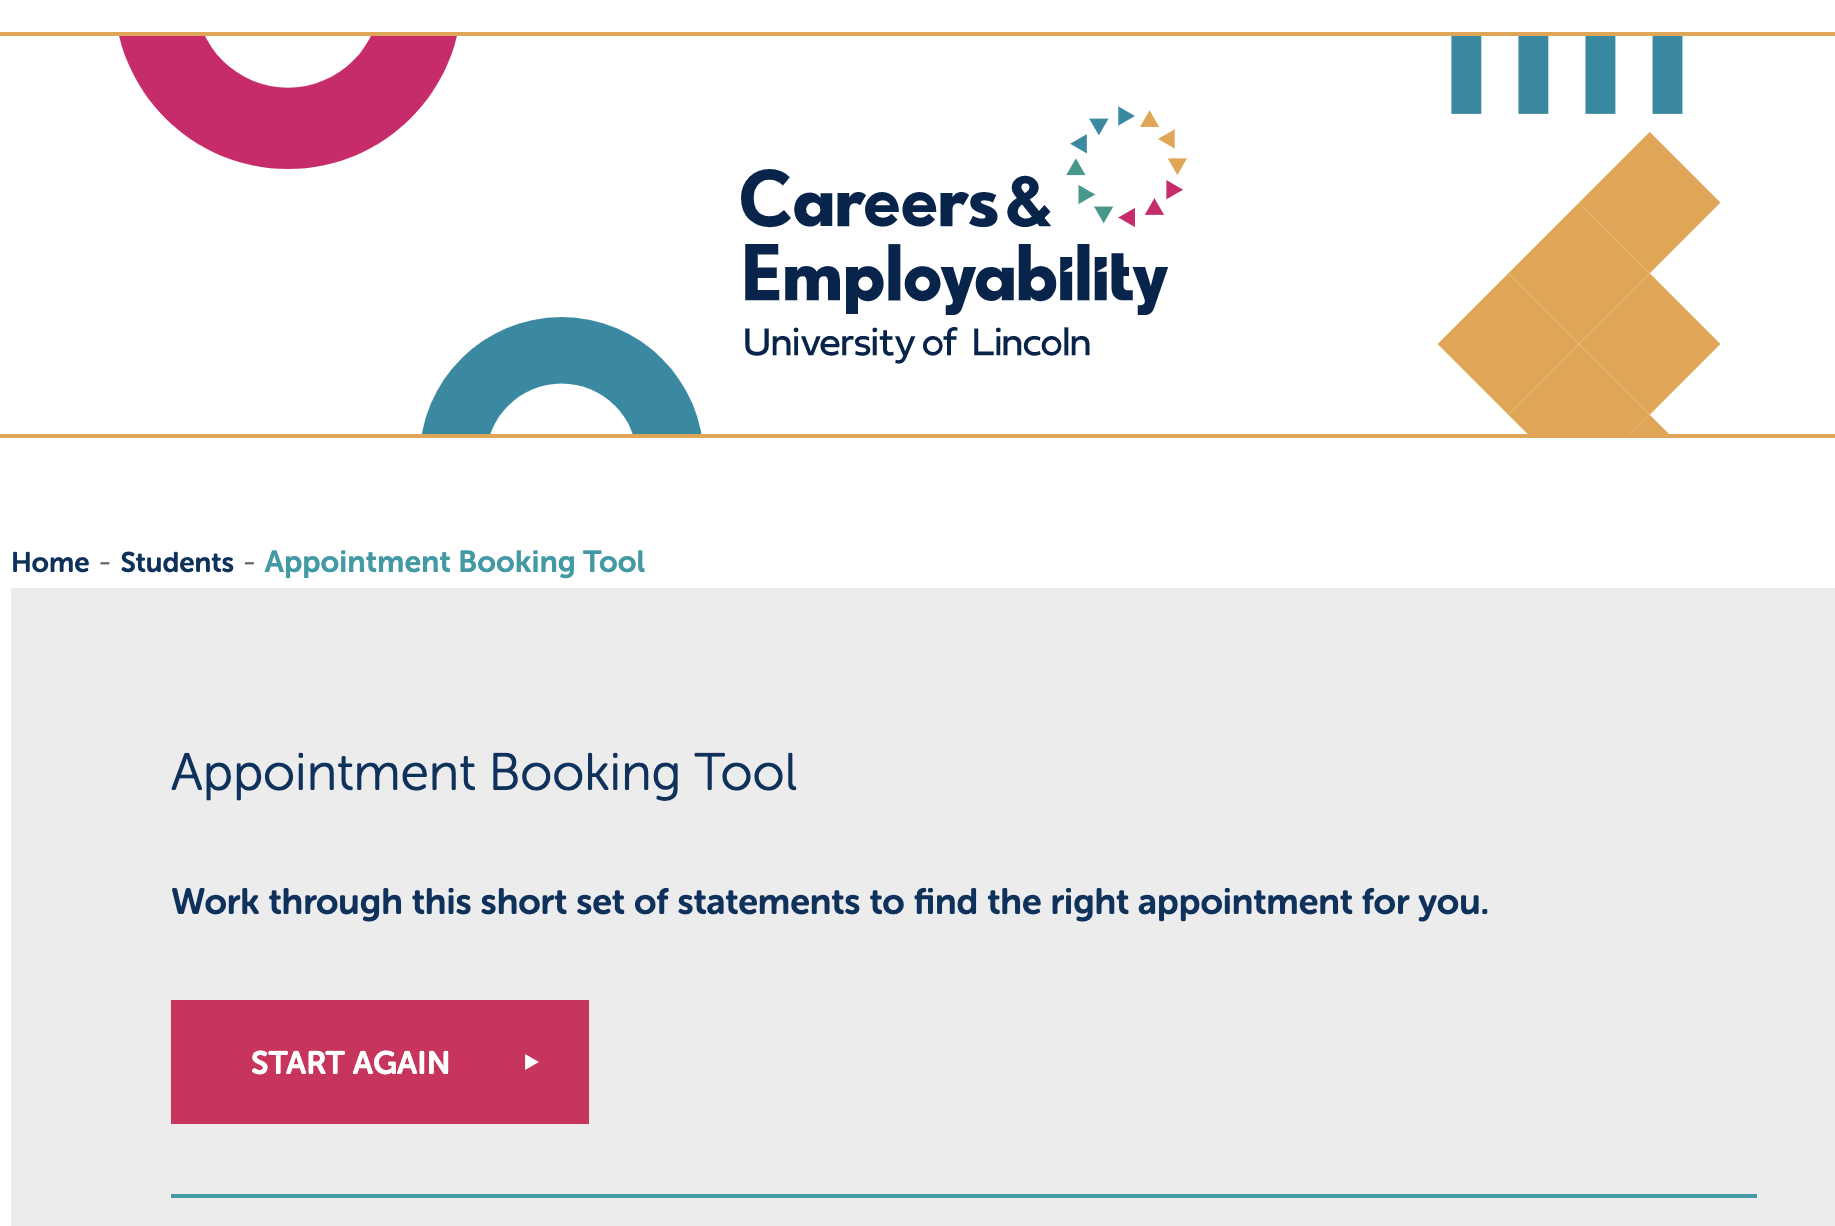 Careers & Employability website screenshot to book an appointment